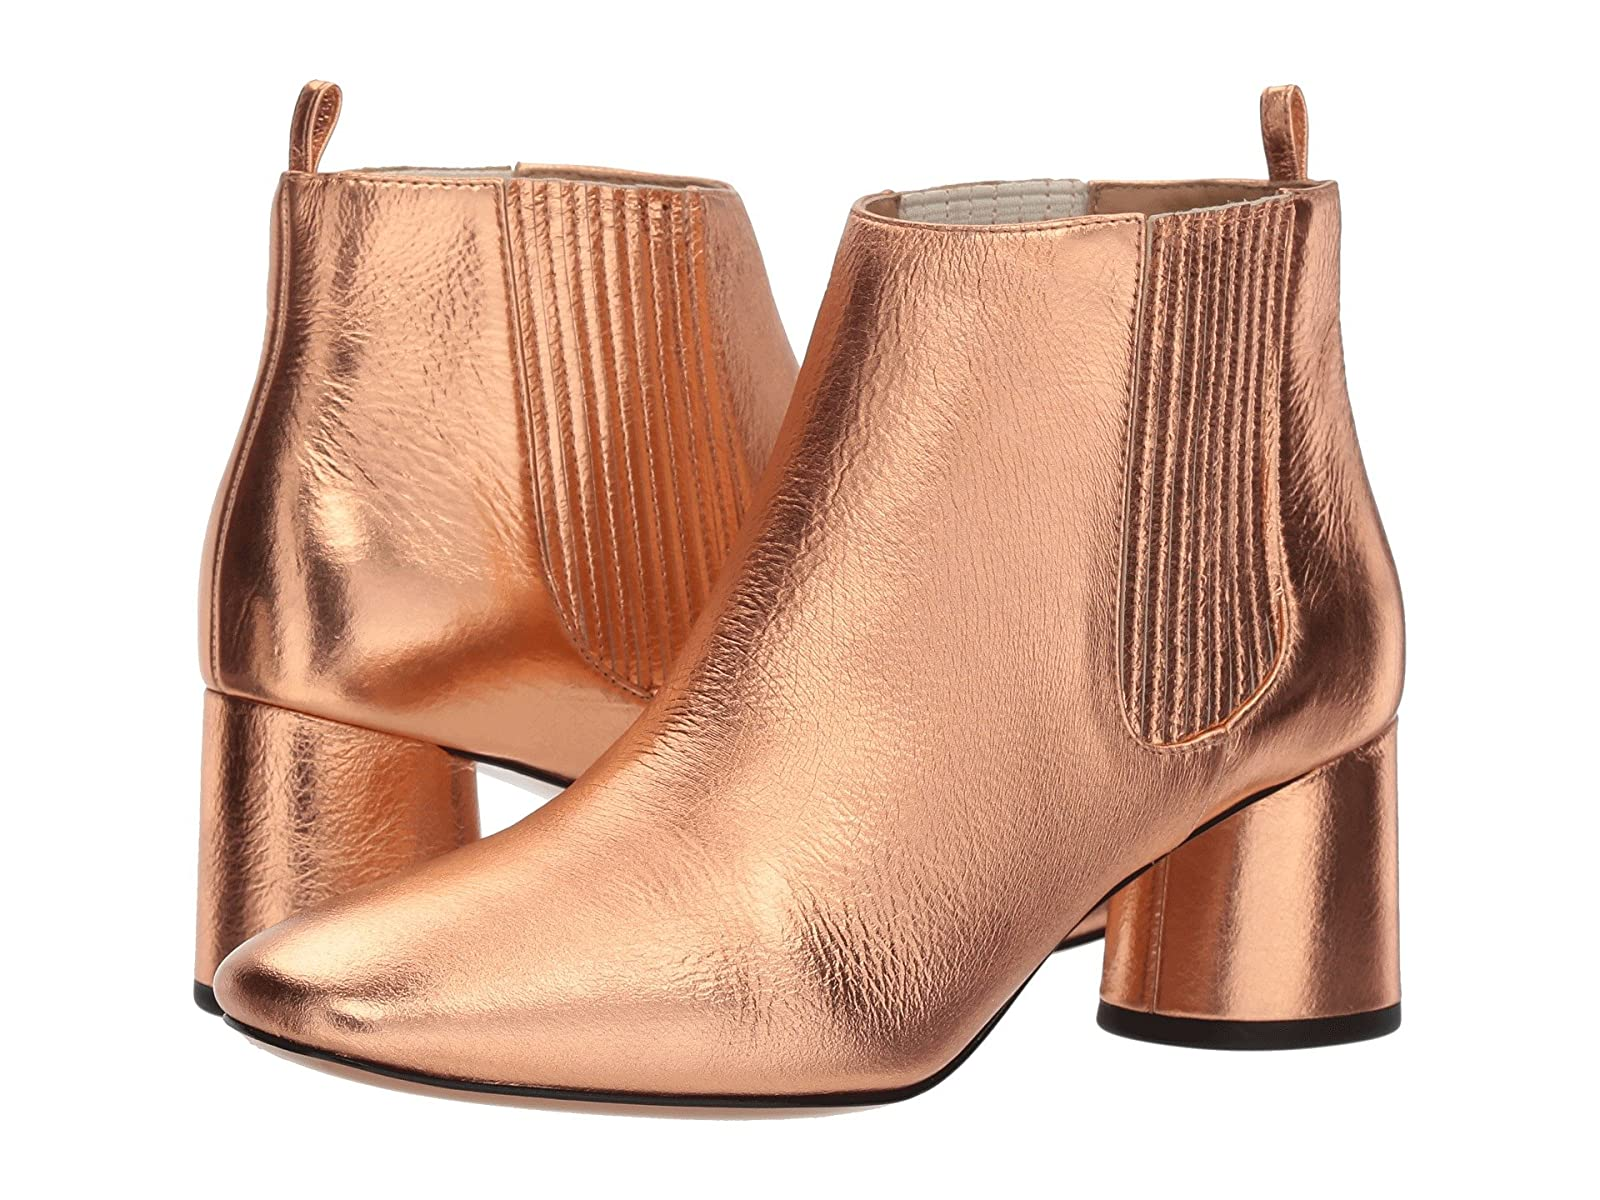 Marc Jacobs Rocket Chelsea BootCheap and distinctive eye-catching shoes